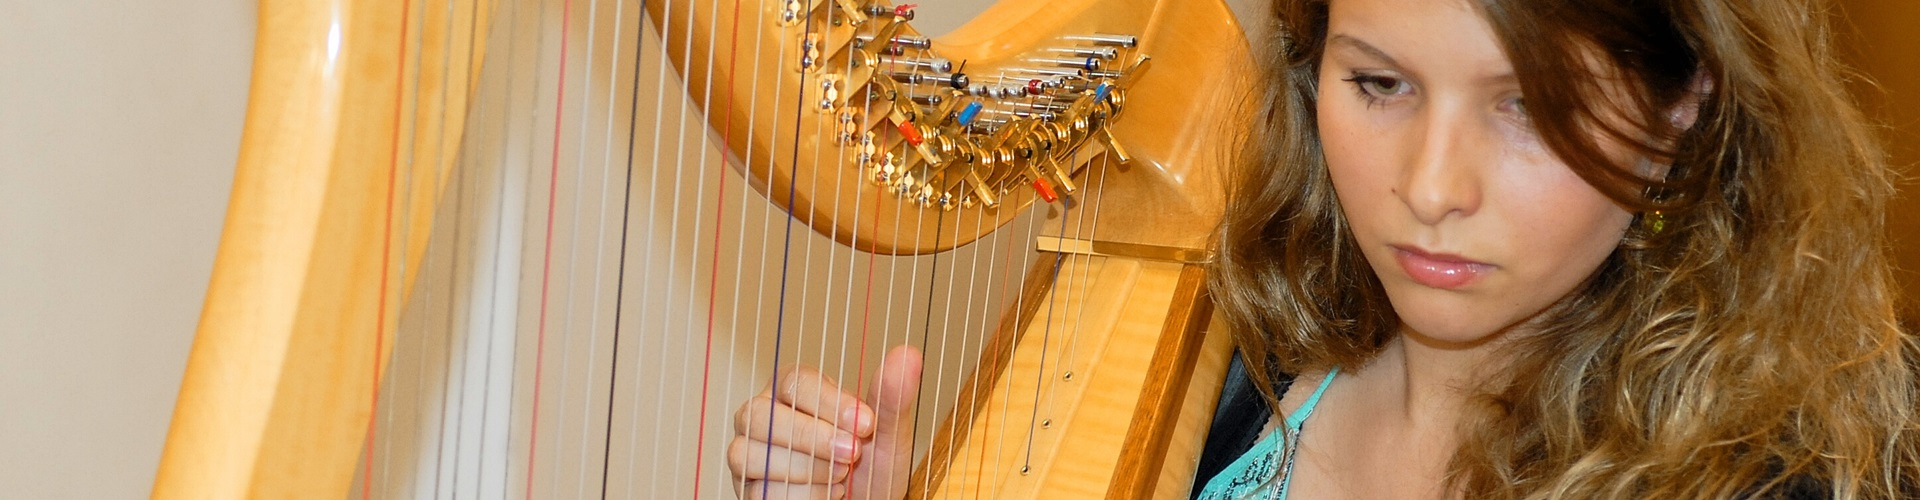 Learn Harp, Harp lessons